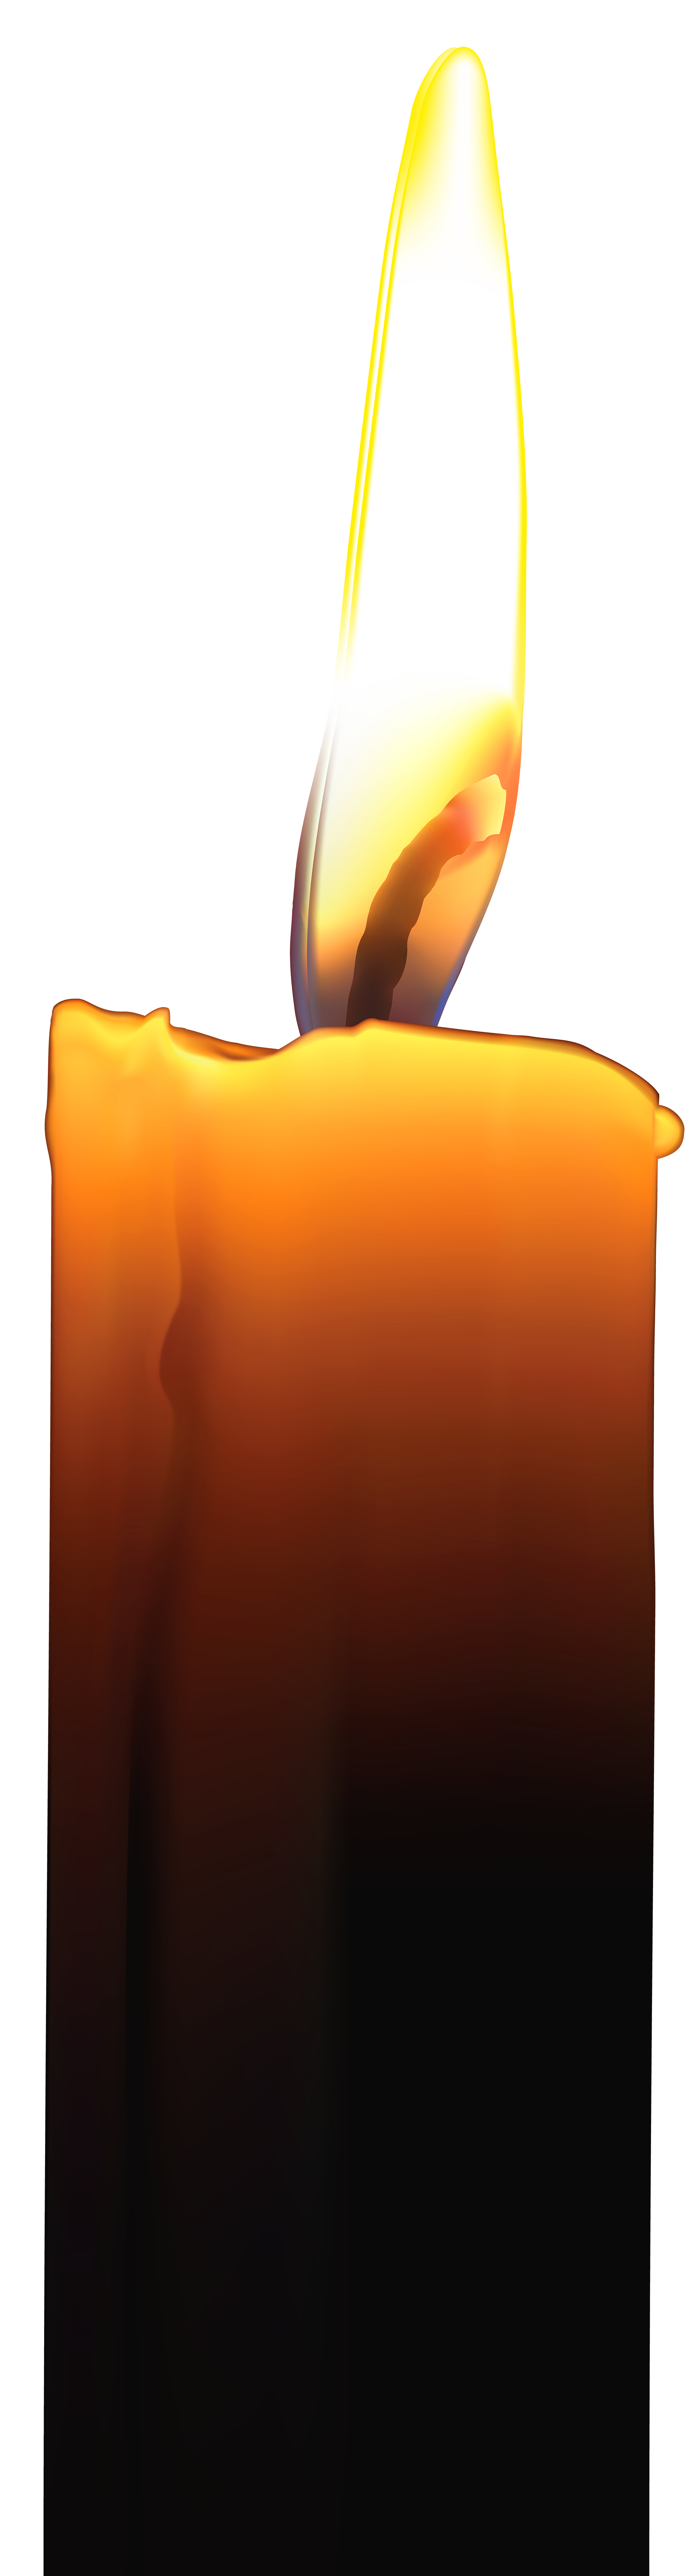 Png clip art image. Candles clipart memorial candle